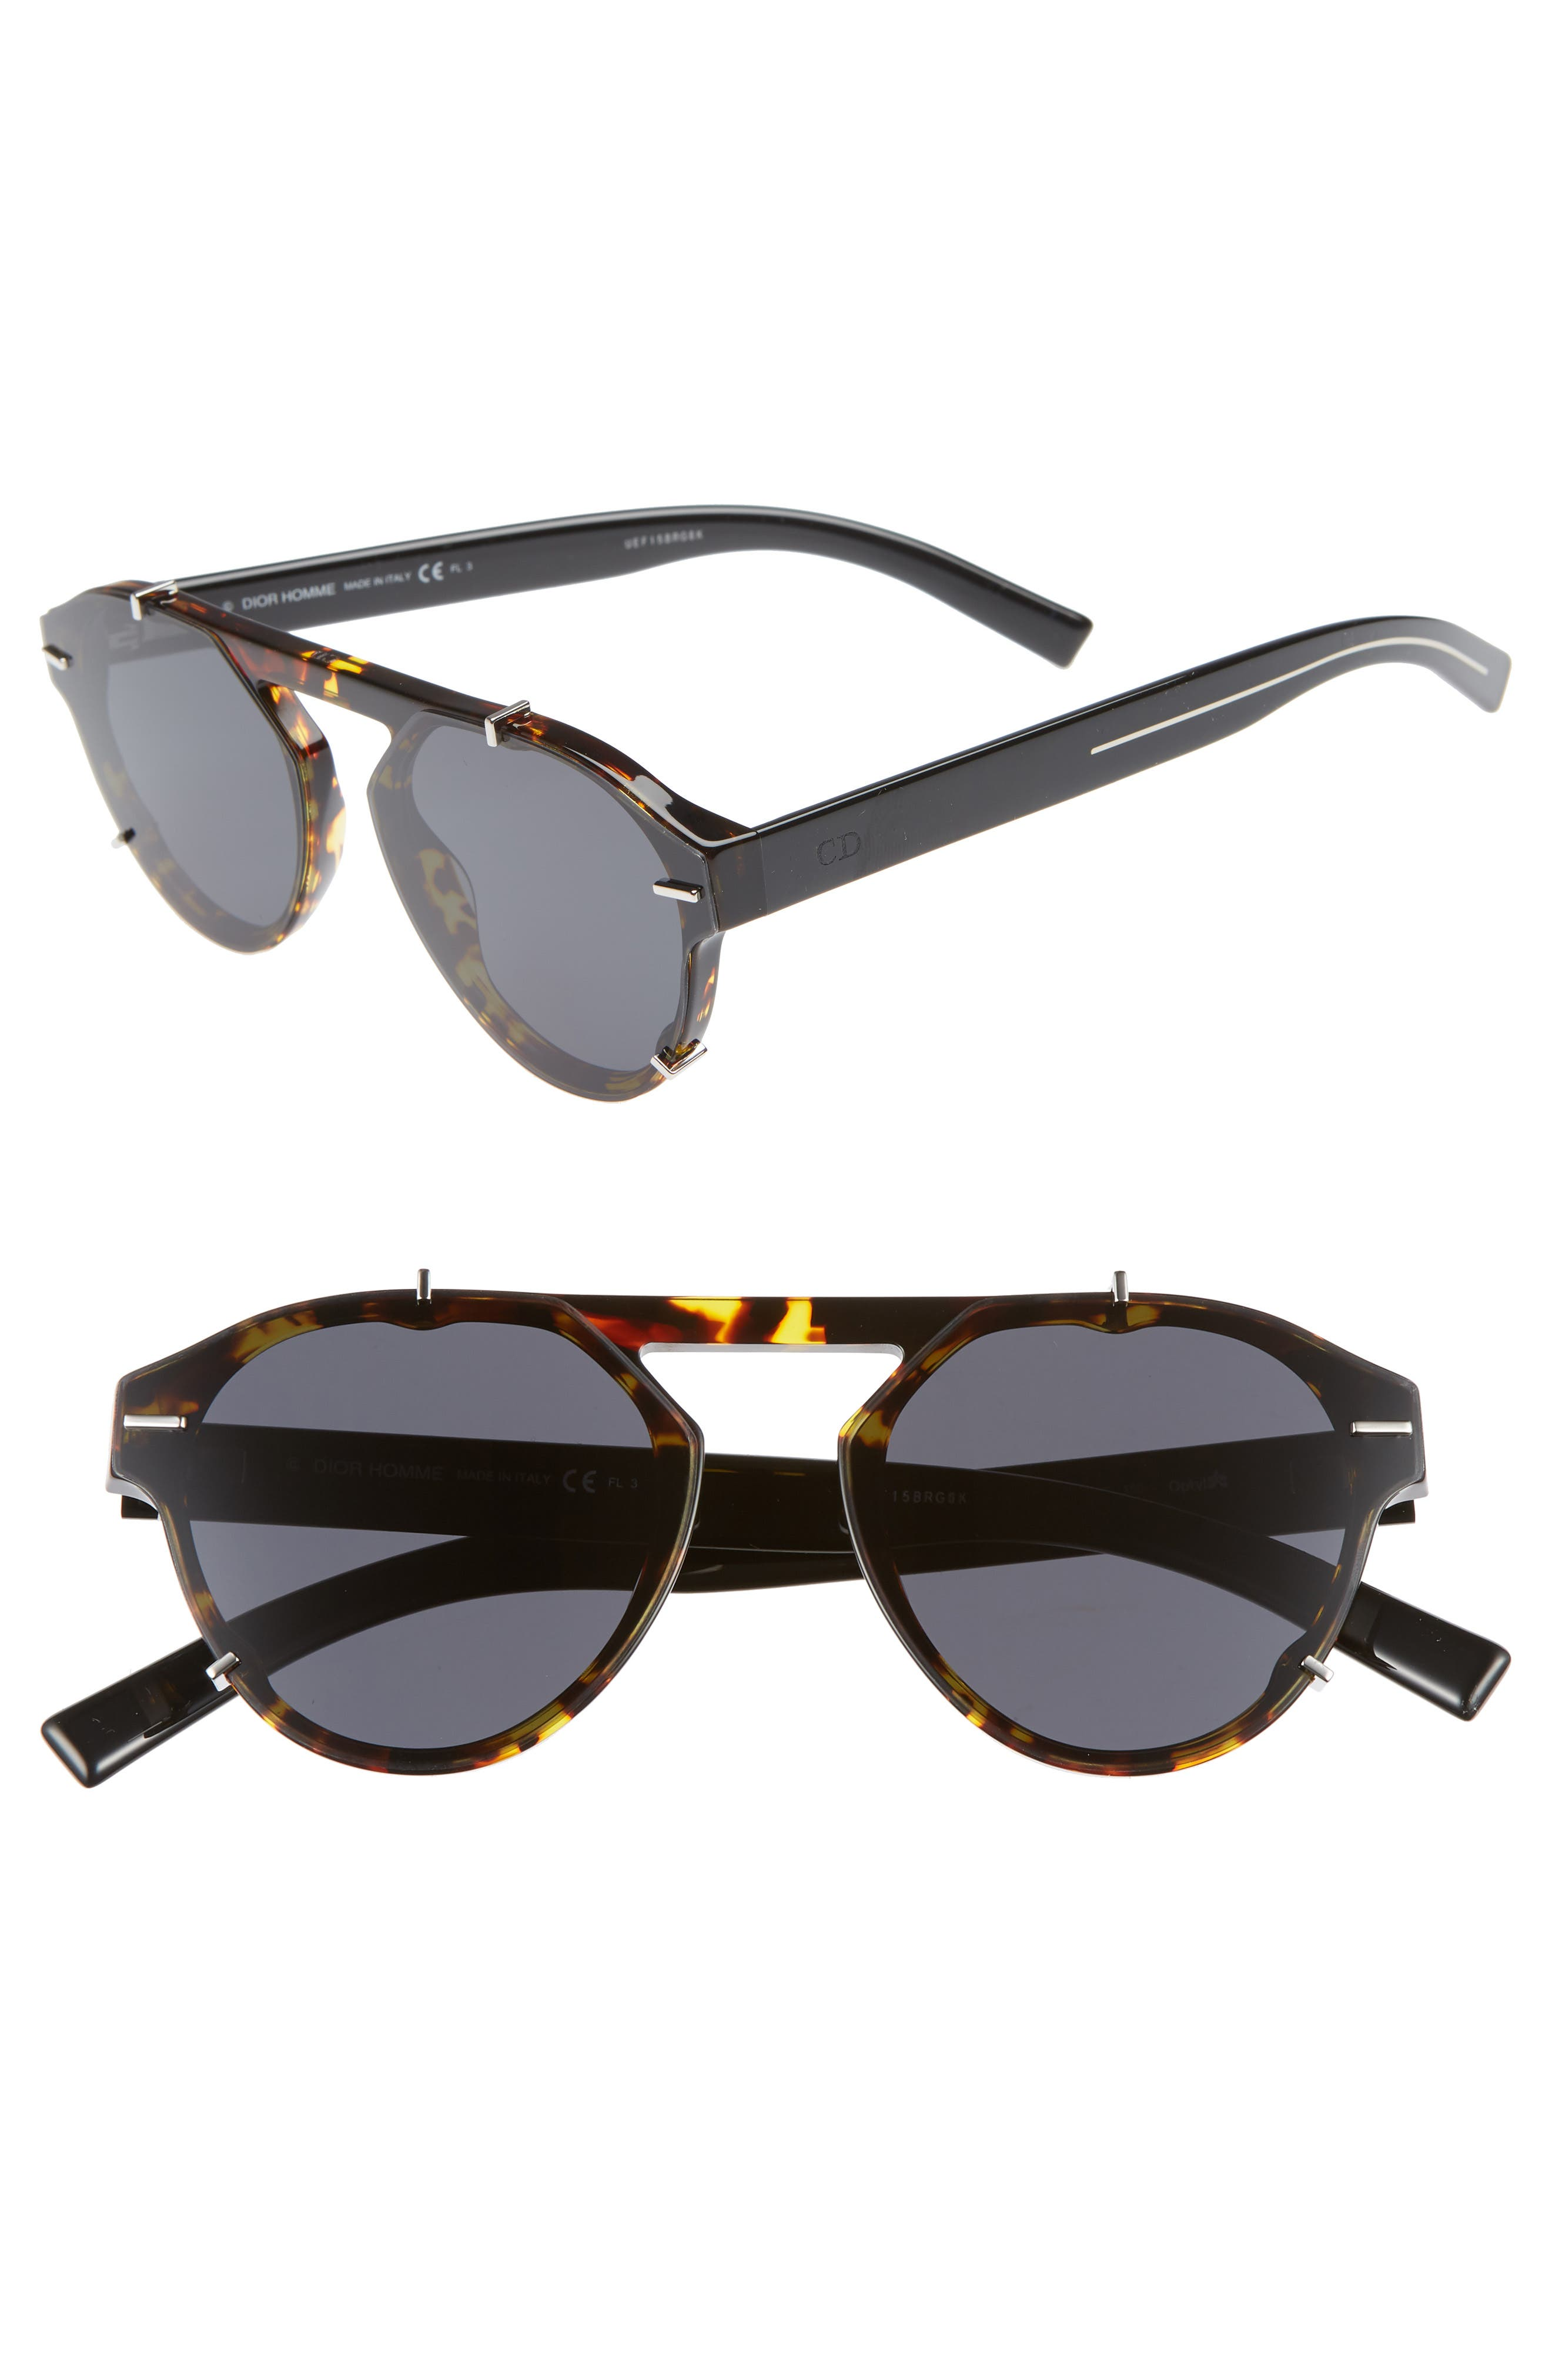 62mm Round Sunglasses,                             Main thumbnail 1, color,                             BLACK